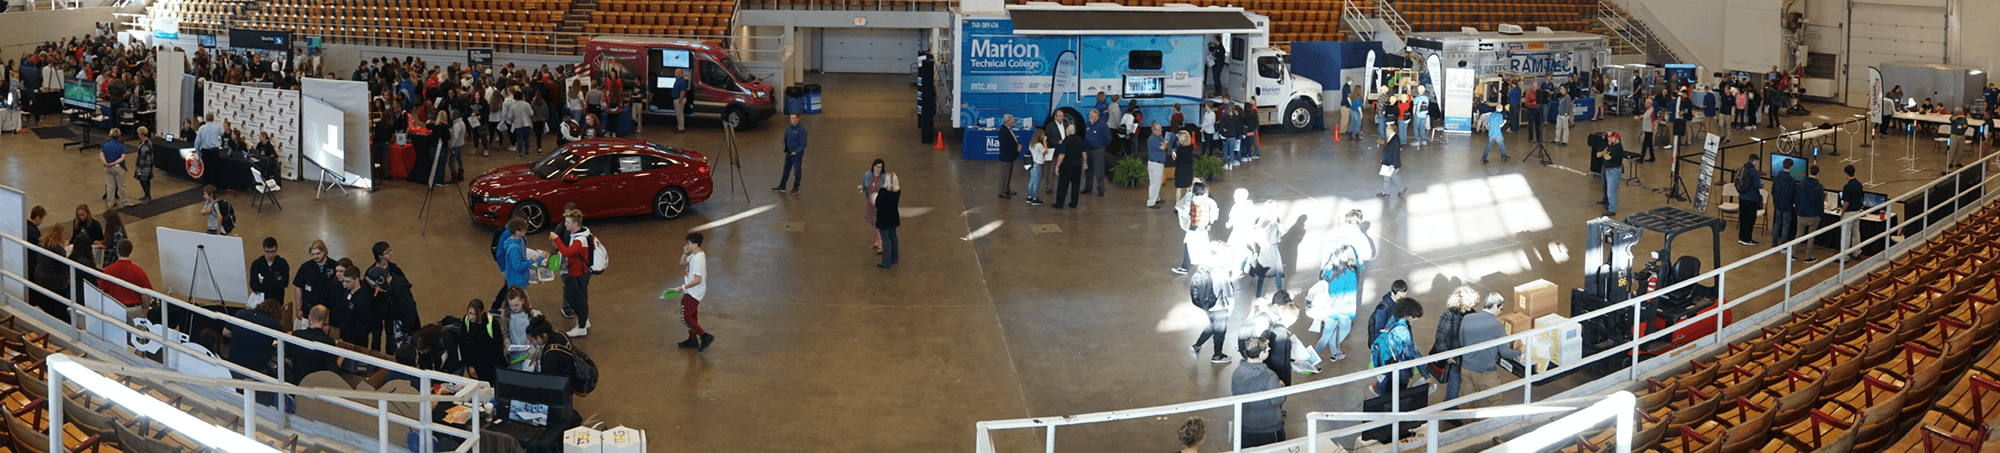 Marion Made Expo 2019